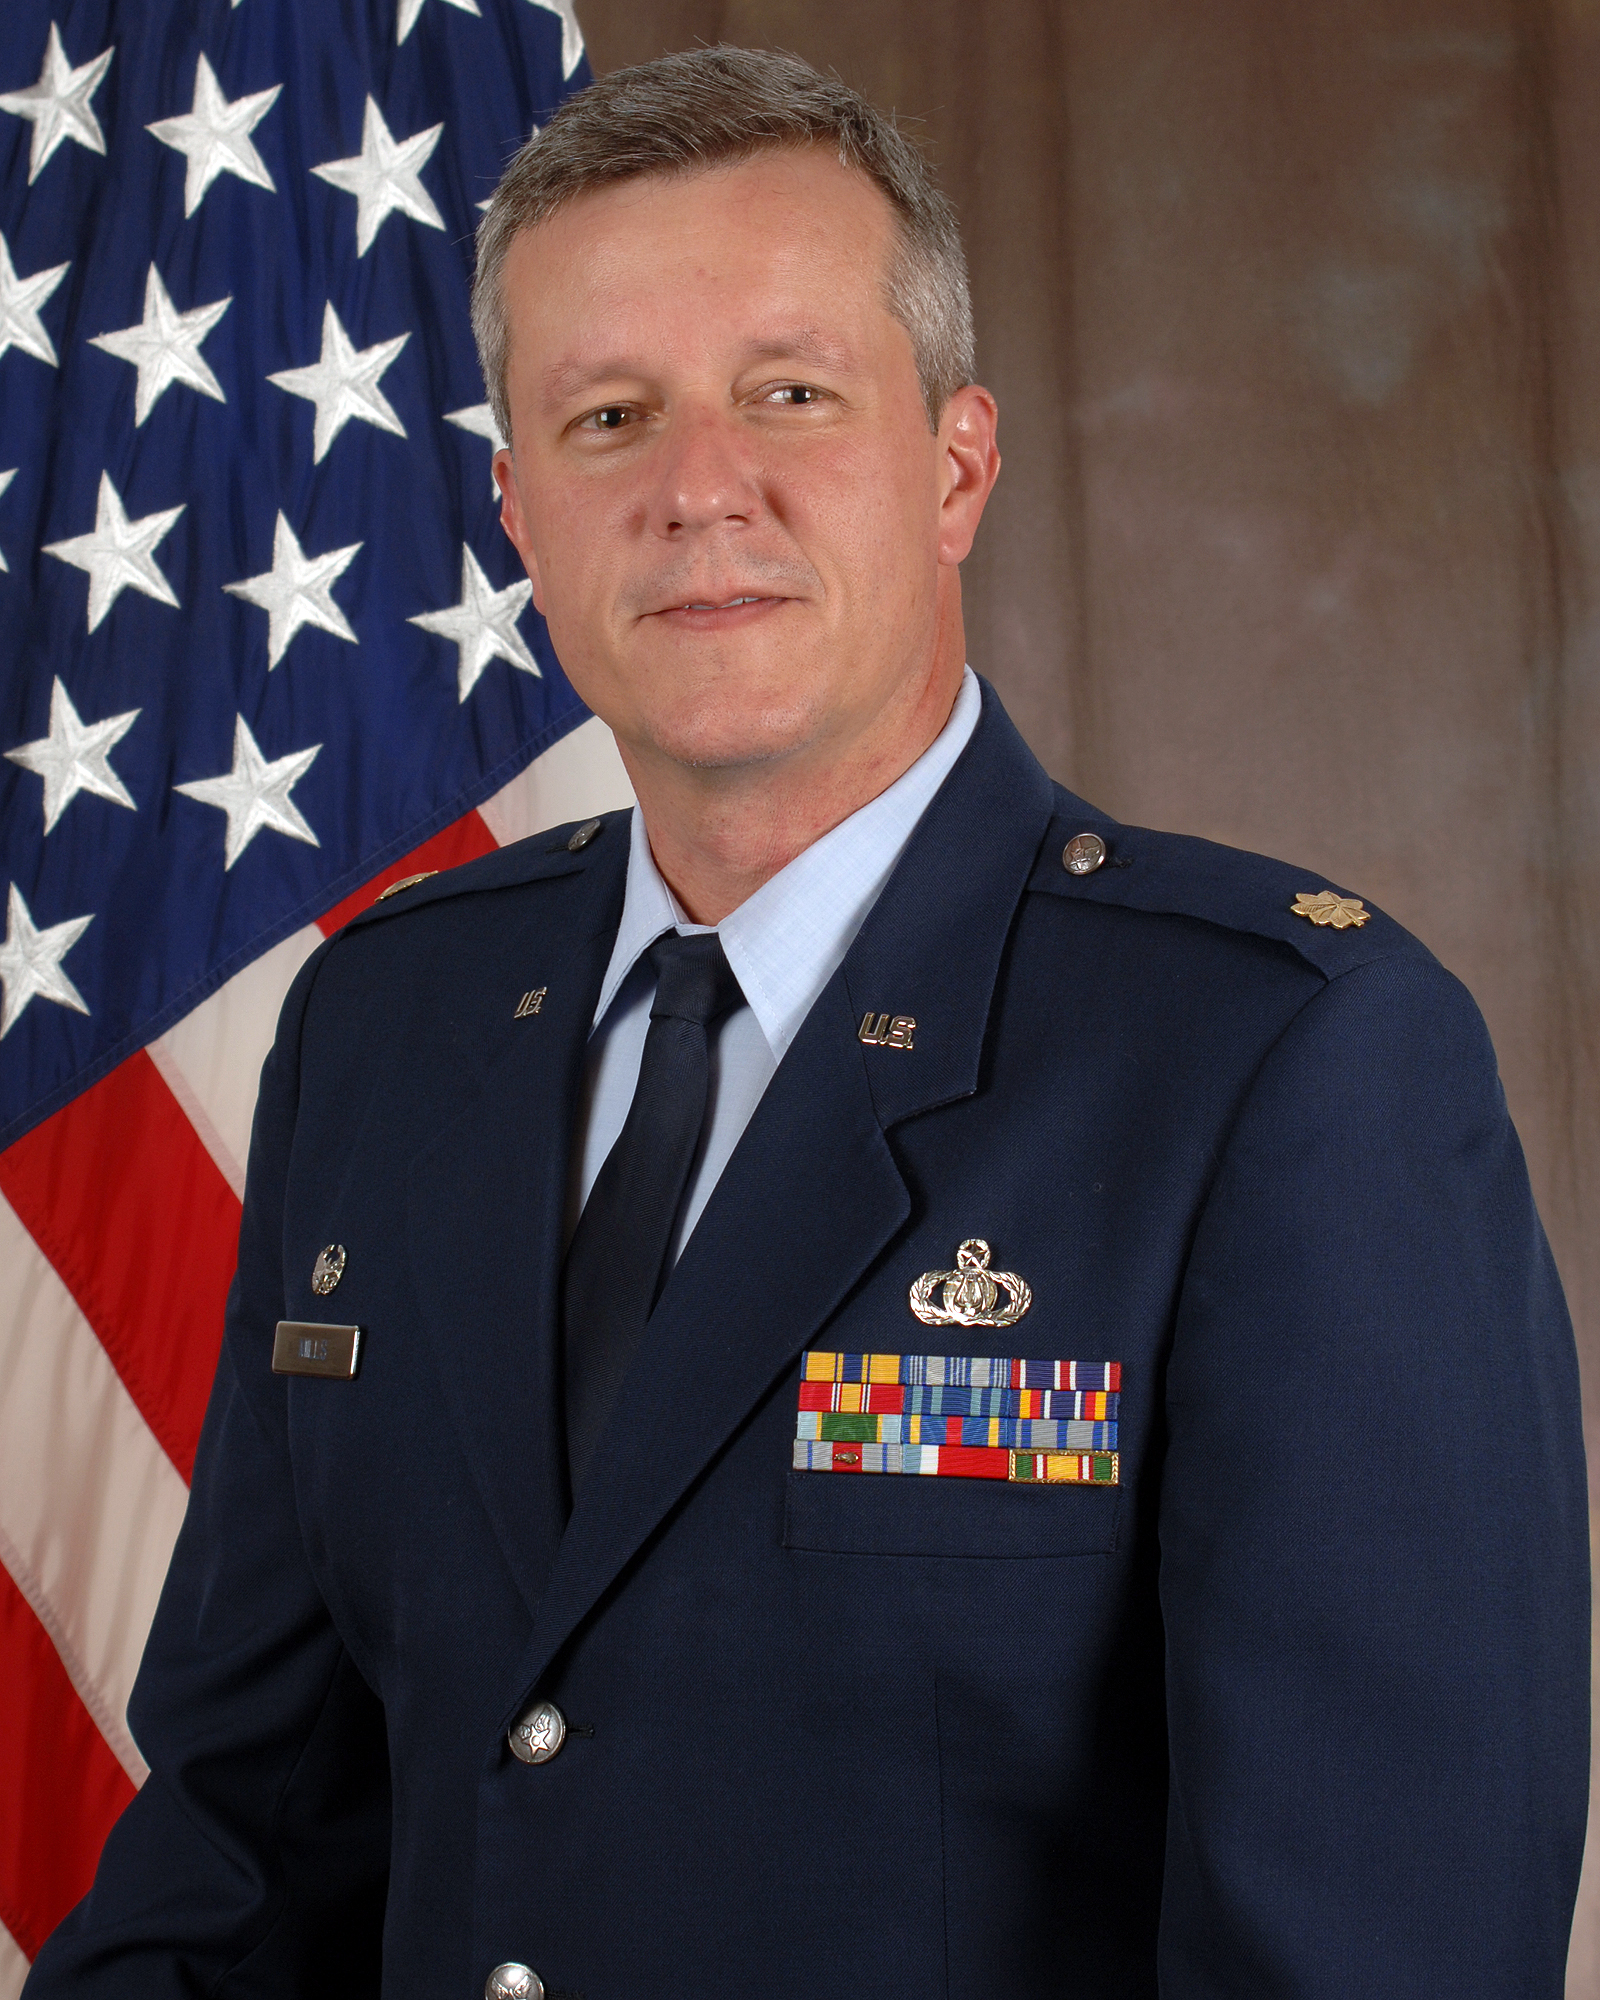 Lt. Col. Roger Mills, Commander and Conductor of the Air National Guard Band of the South